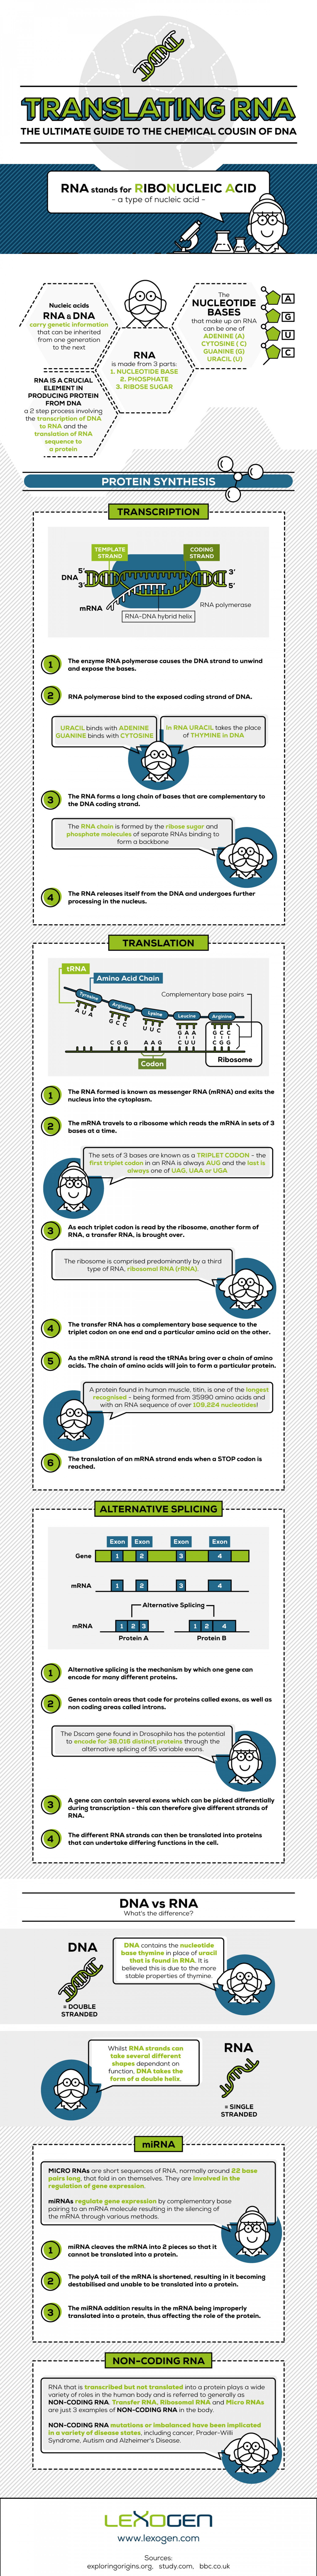 Translating RNA - The Ultimate Guide to the Chemical Cousin of DNA Infographic